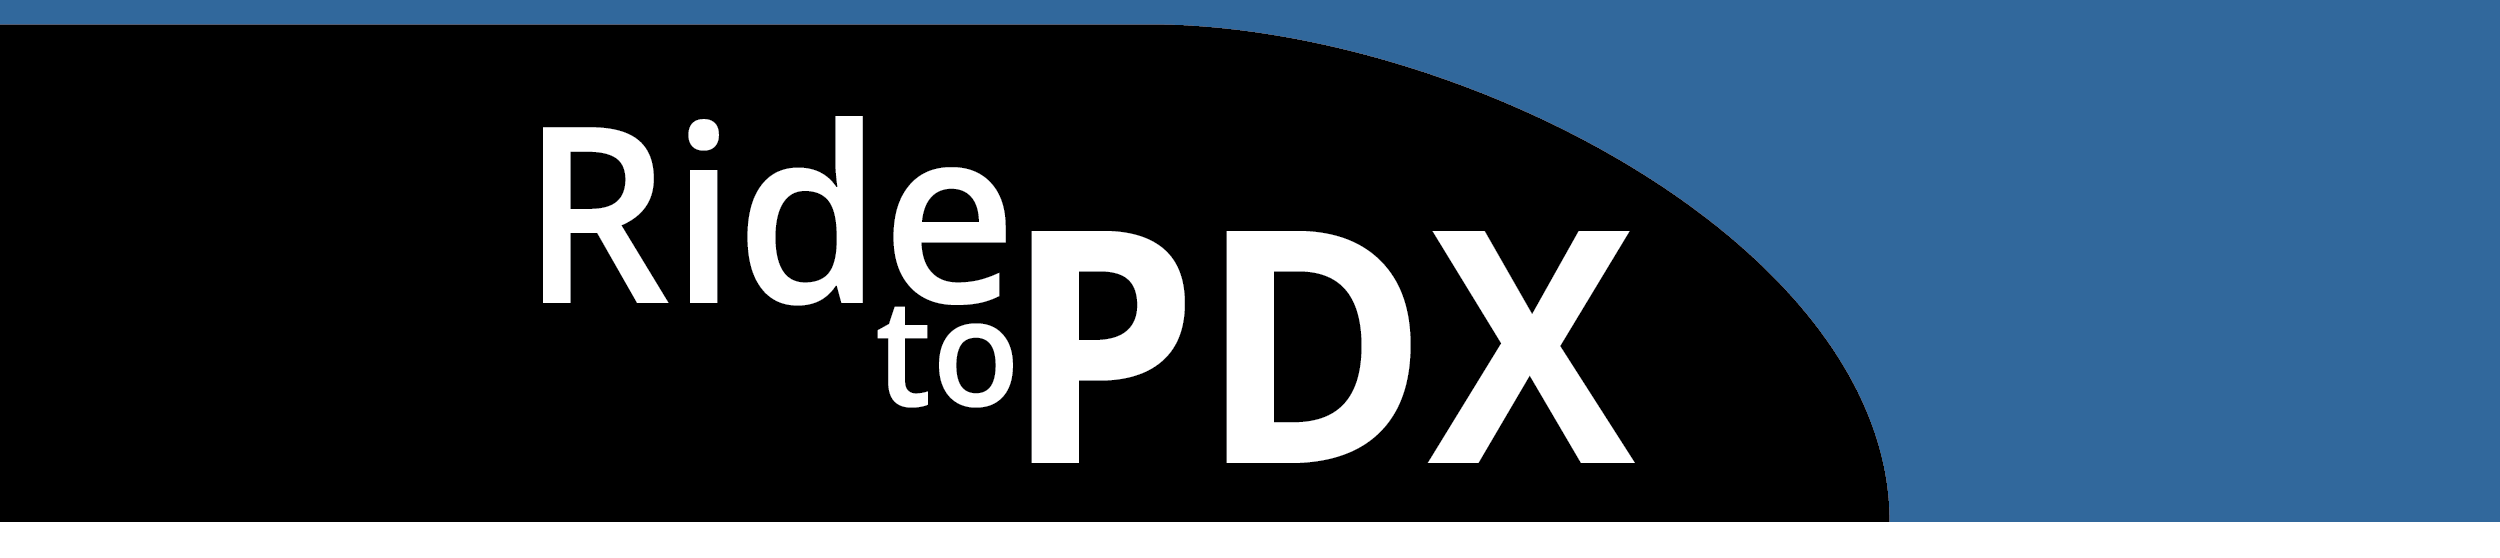 ride to pdx logo2